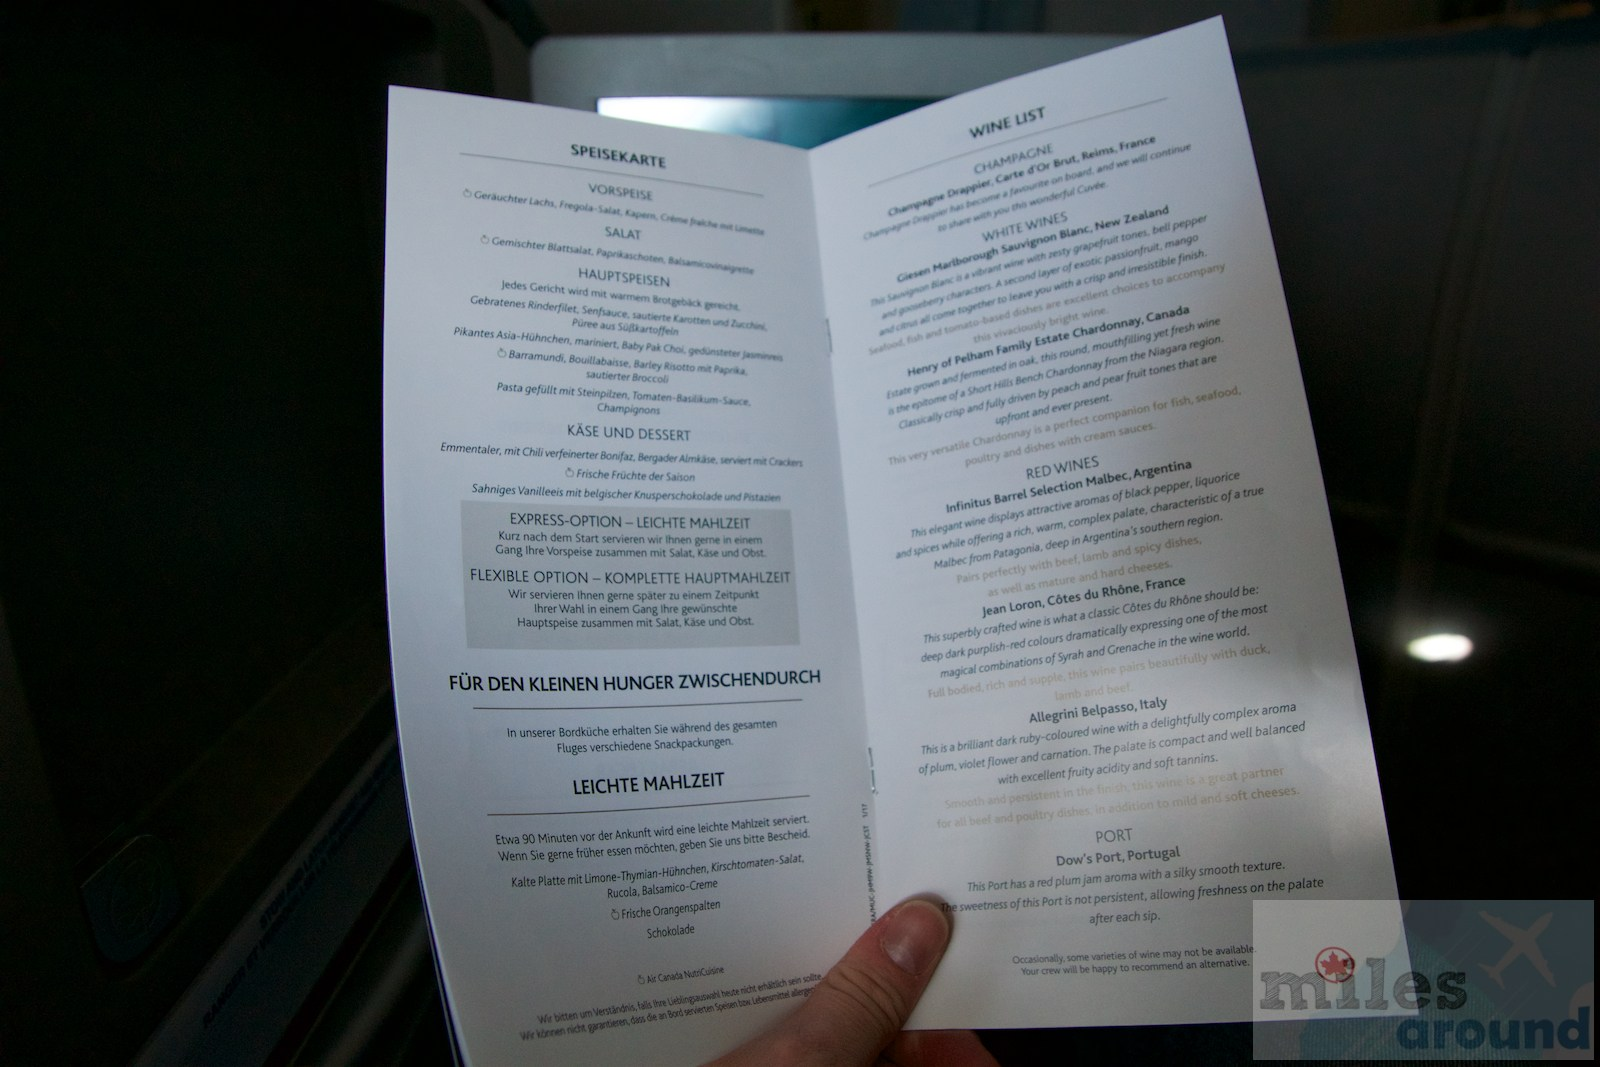 Air Canada Airbus A330 300 Business class cabin inflight meal food services menu @milesaround